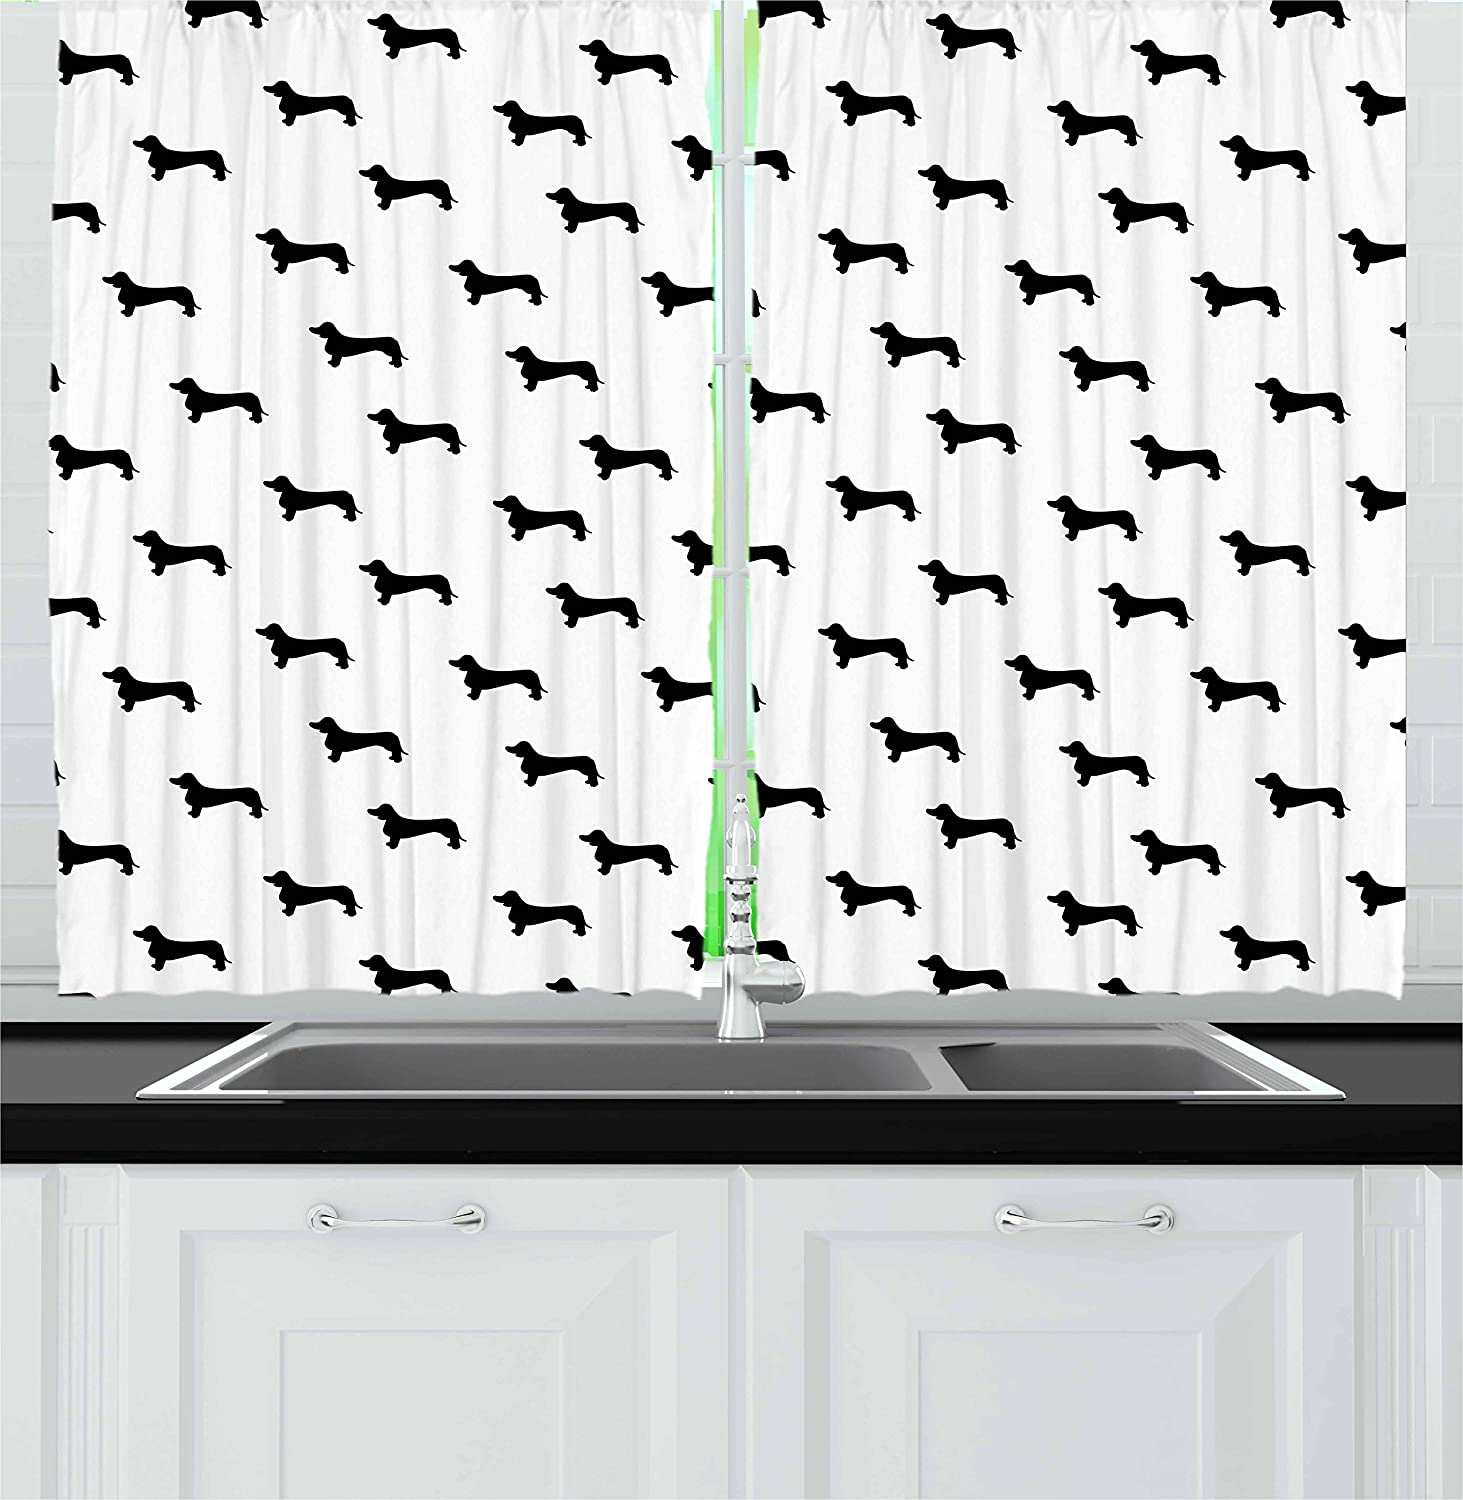 Amazon Com Ambesonne Dog Lover Kitchen Curtains Monochrome Dachshund Silhouettes Breed Dog Domestic Canine Pattern Active Pet Window Drapes 2 Panel Set For Kitchen Cafe Decor 55 X 39 Charcoal White Home